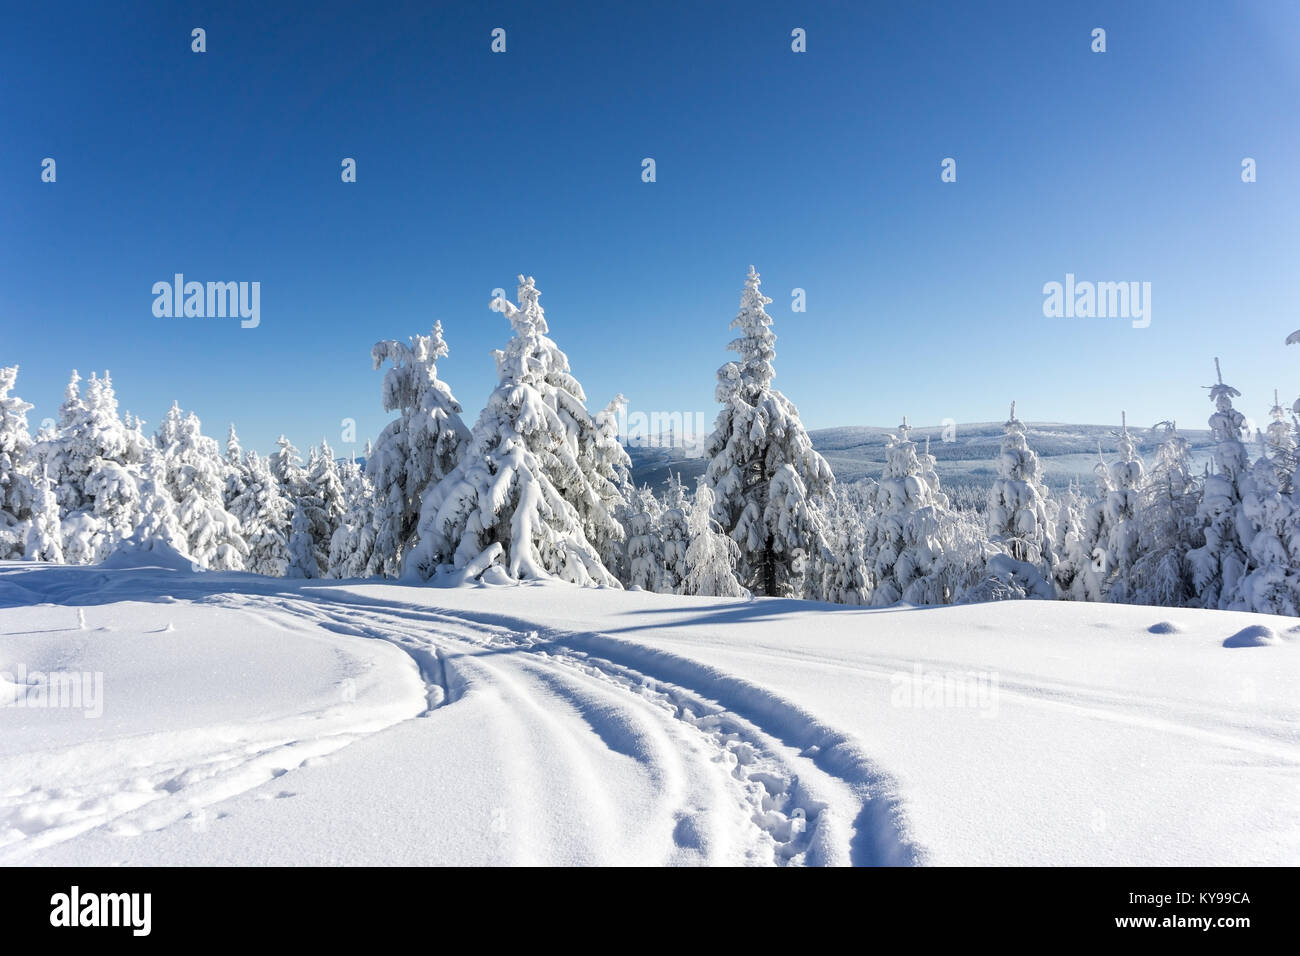 Winter mountains landscape. Trees covered with fresh snow in sunny day. Karkonosze,  Giant Mountains, Poland. - Stock Image